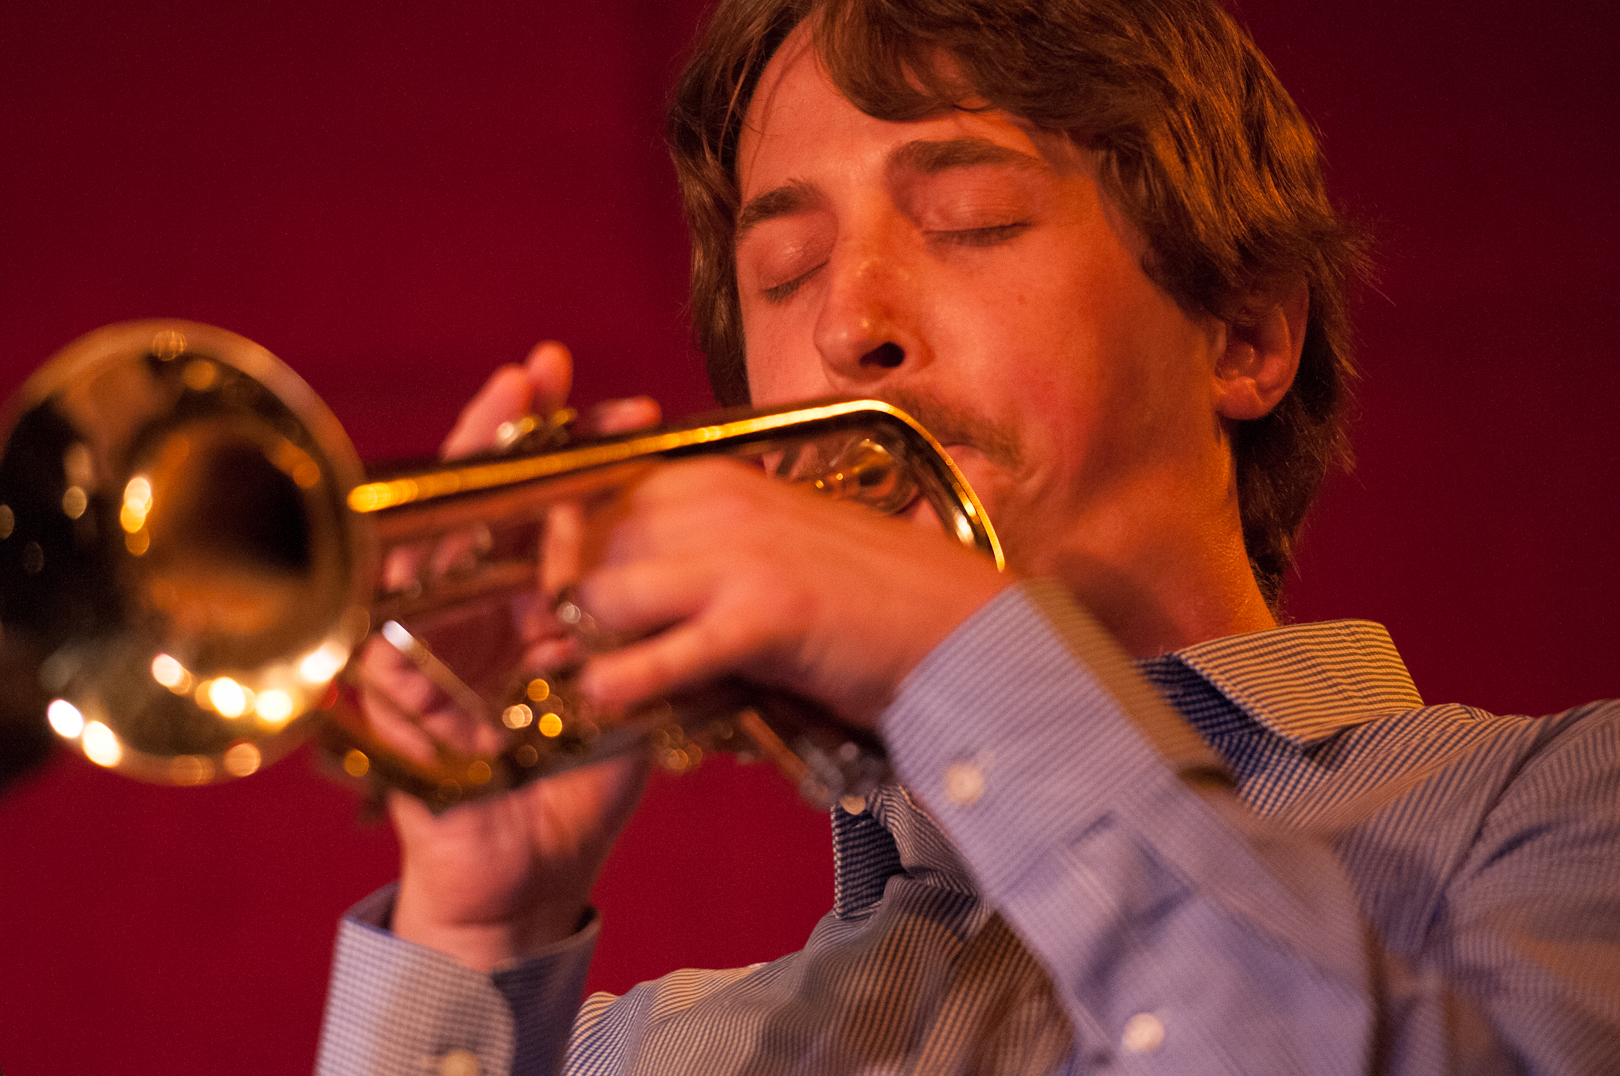 Dan Rosenthal with the Either/Orchestra at the Jazz Standard